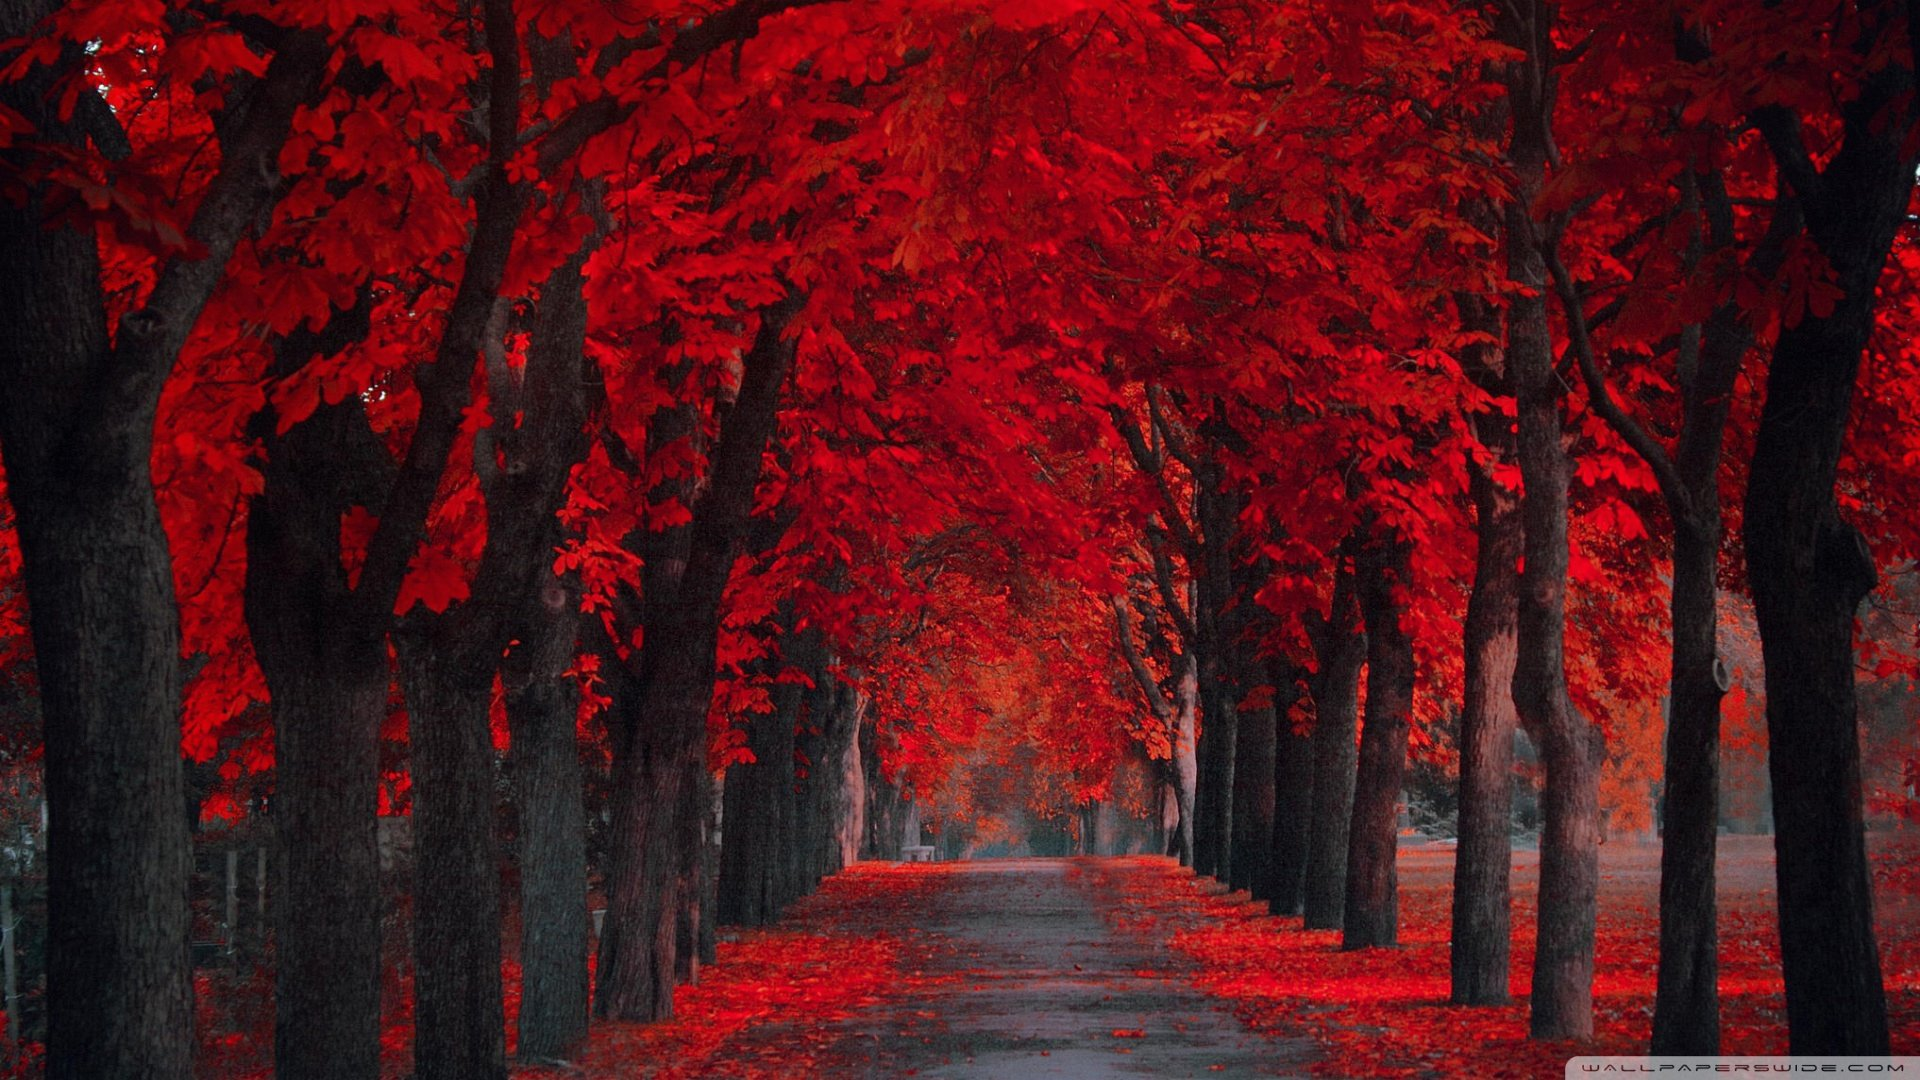 Best Red Autumn 1920x1080 Wallpaper by Addie Ruffo